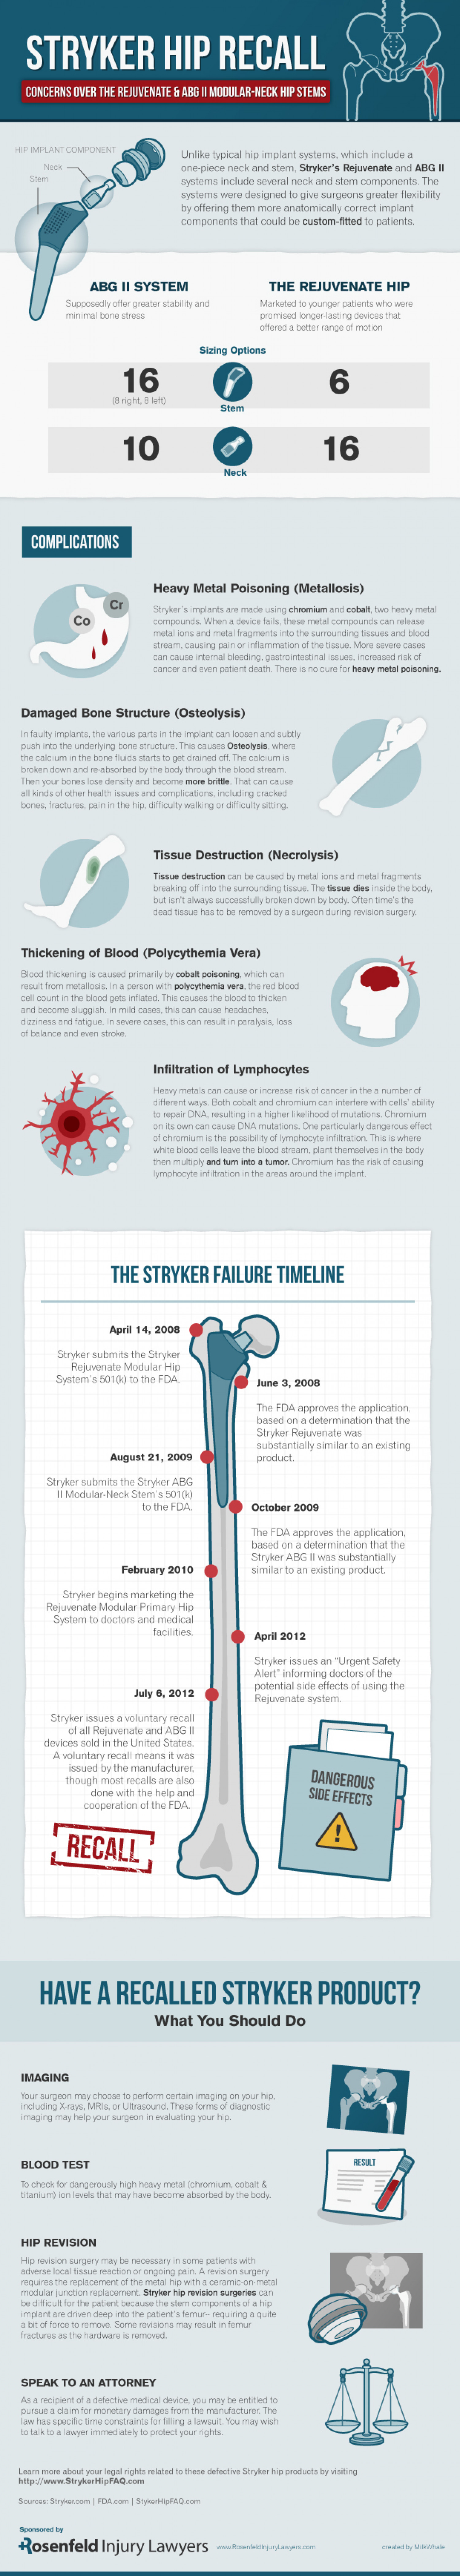 Stryker Hip Recall: Concern Owner Rejuvenate Hip  Infographic